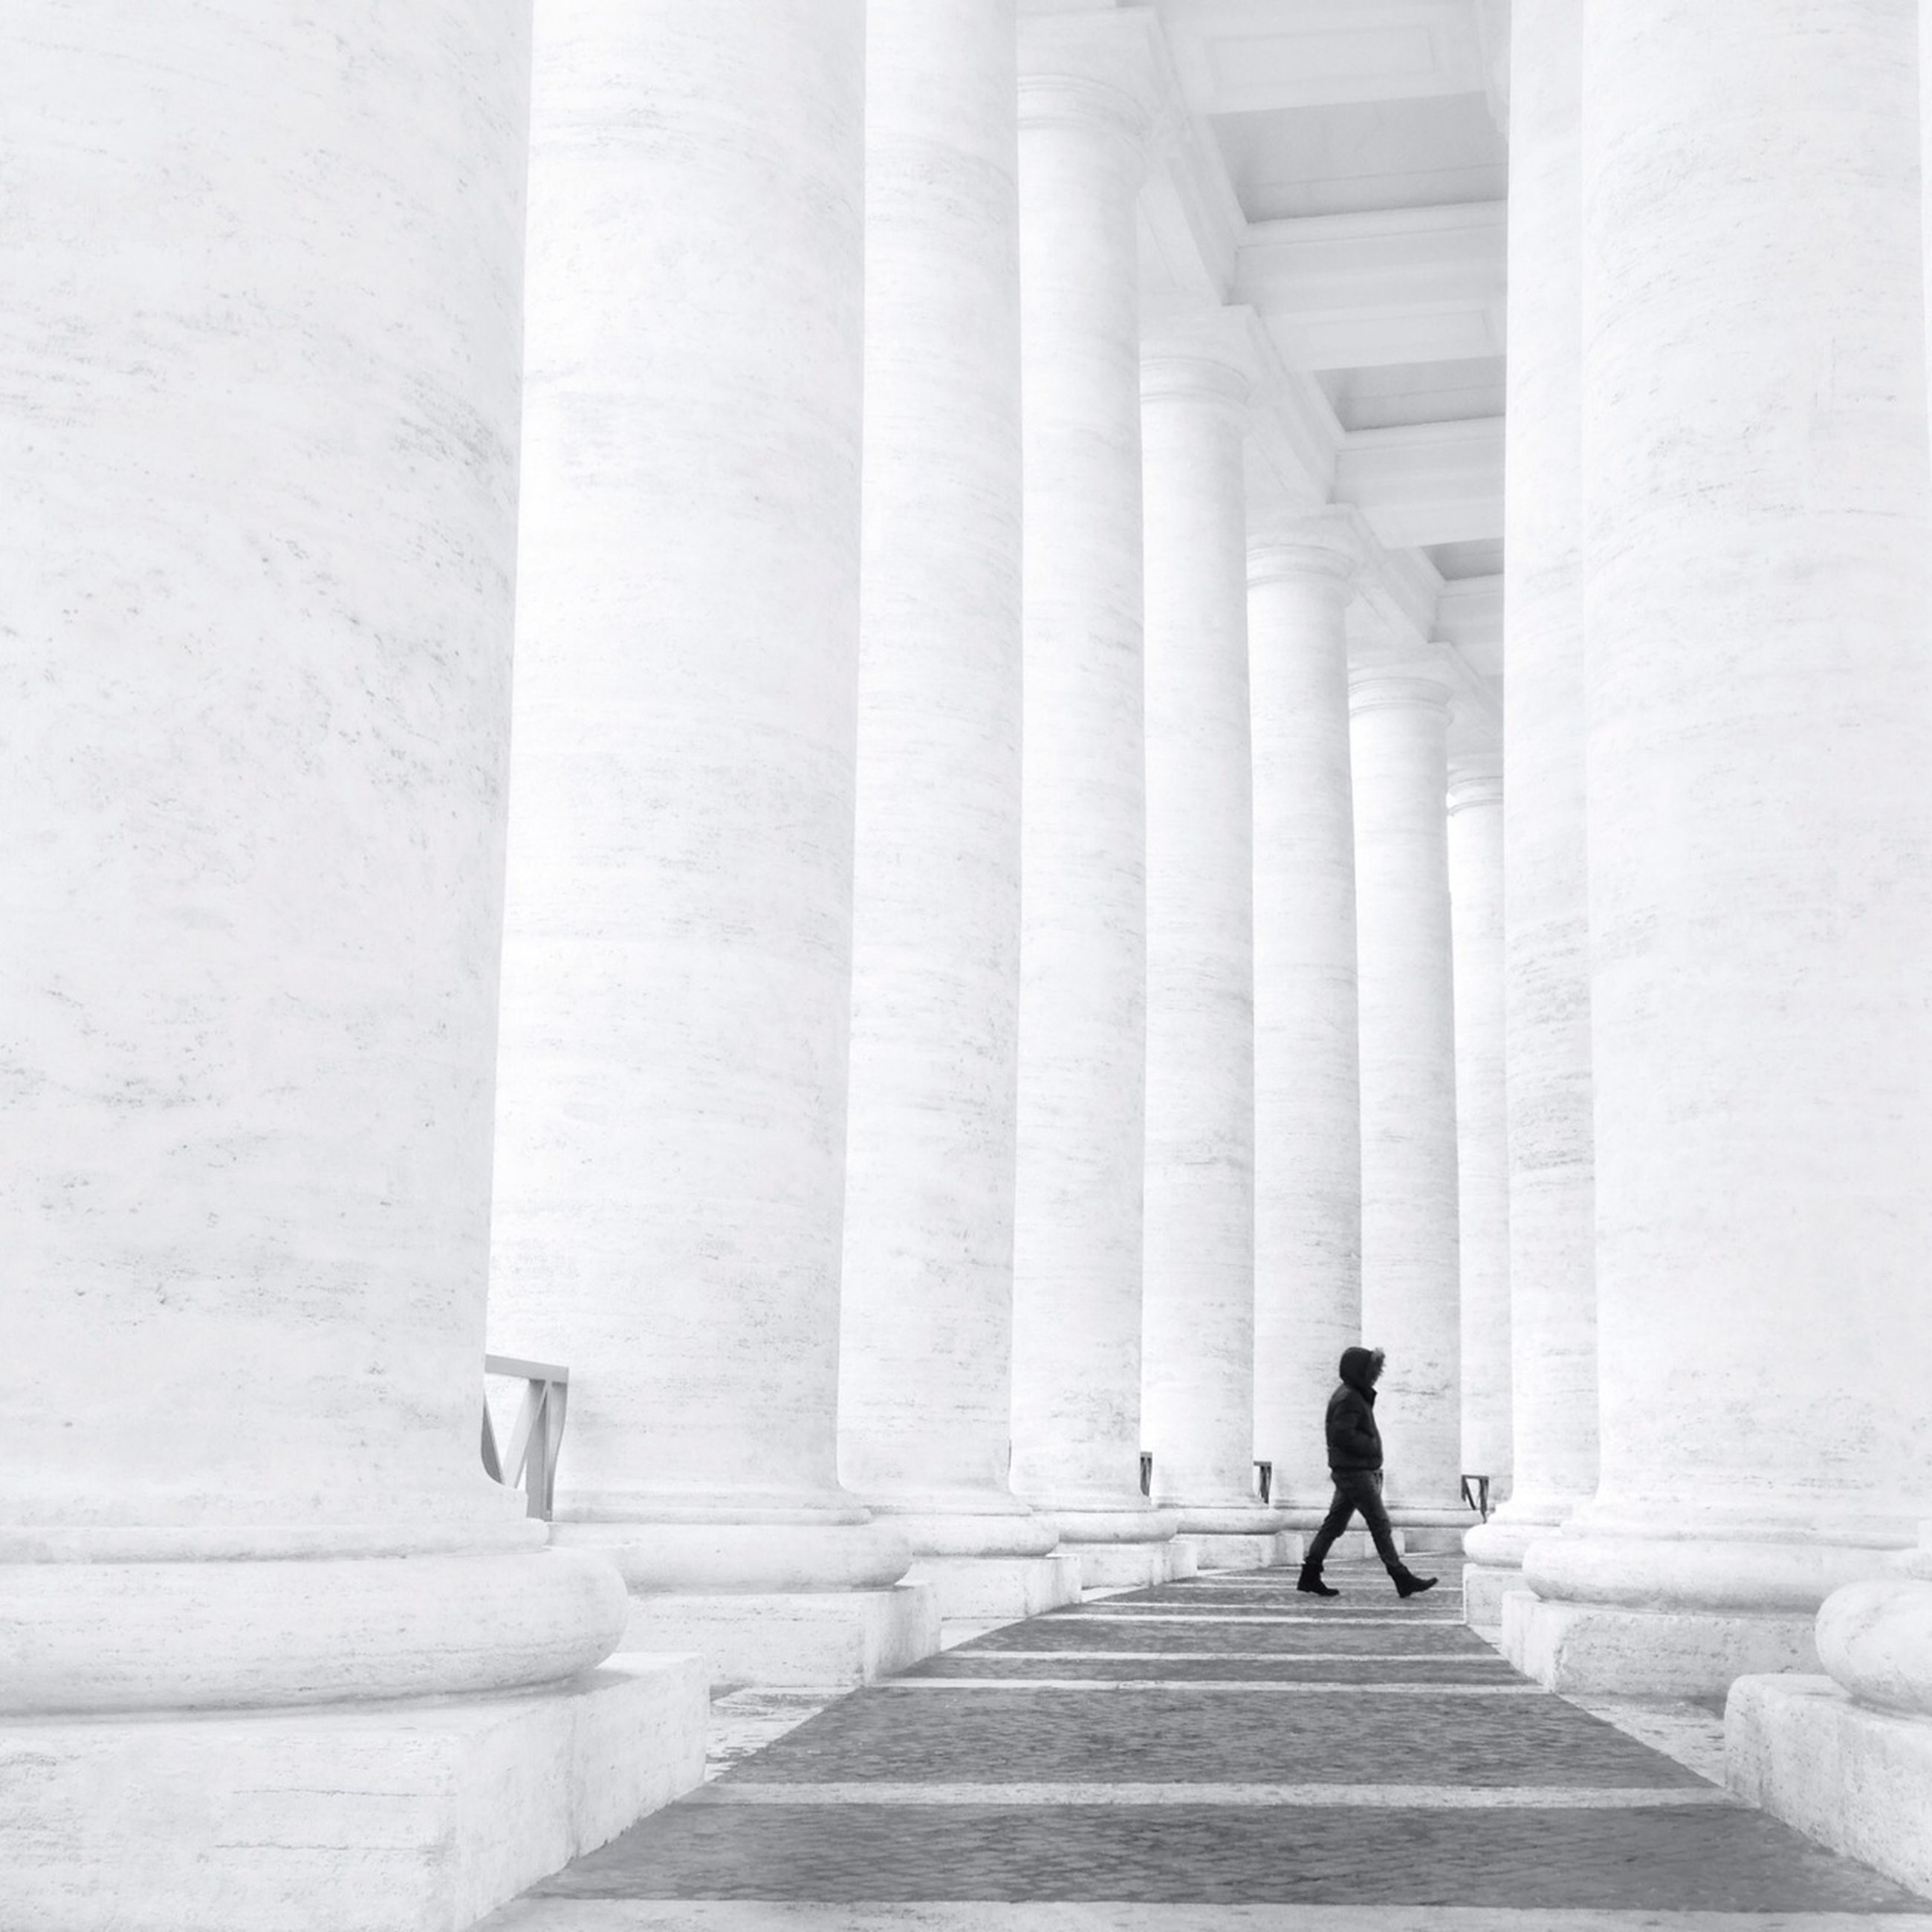 architecture, built structure, building exterior, walking, the way forward, men, full length, steps, building, rear view, lifestyles, sunlight, shadow, corridor, person, wall - building feature, day, architectural column